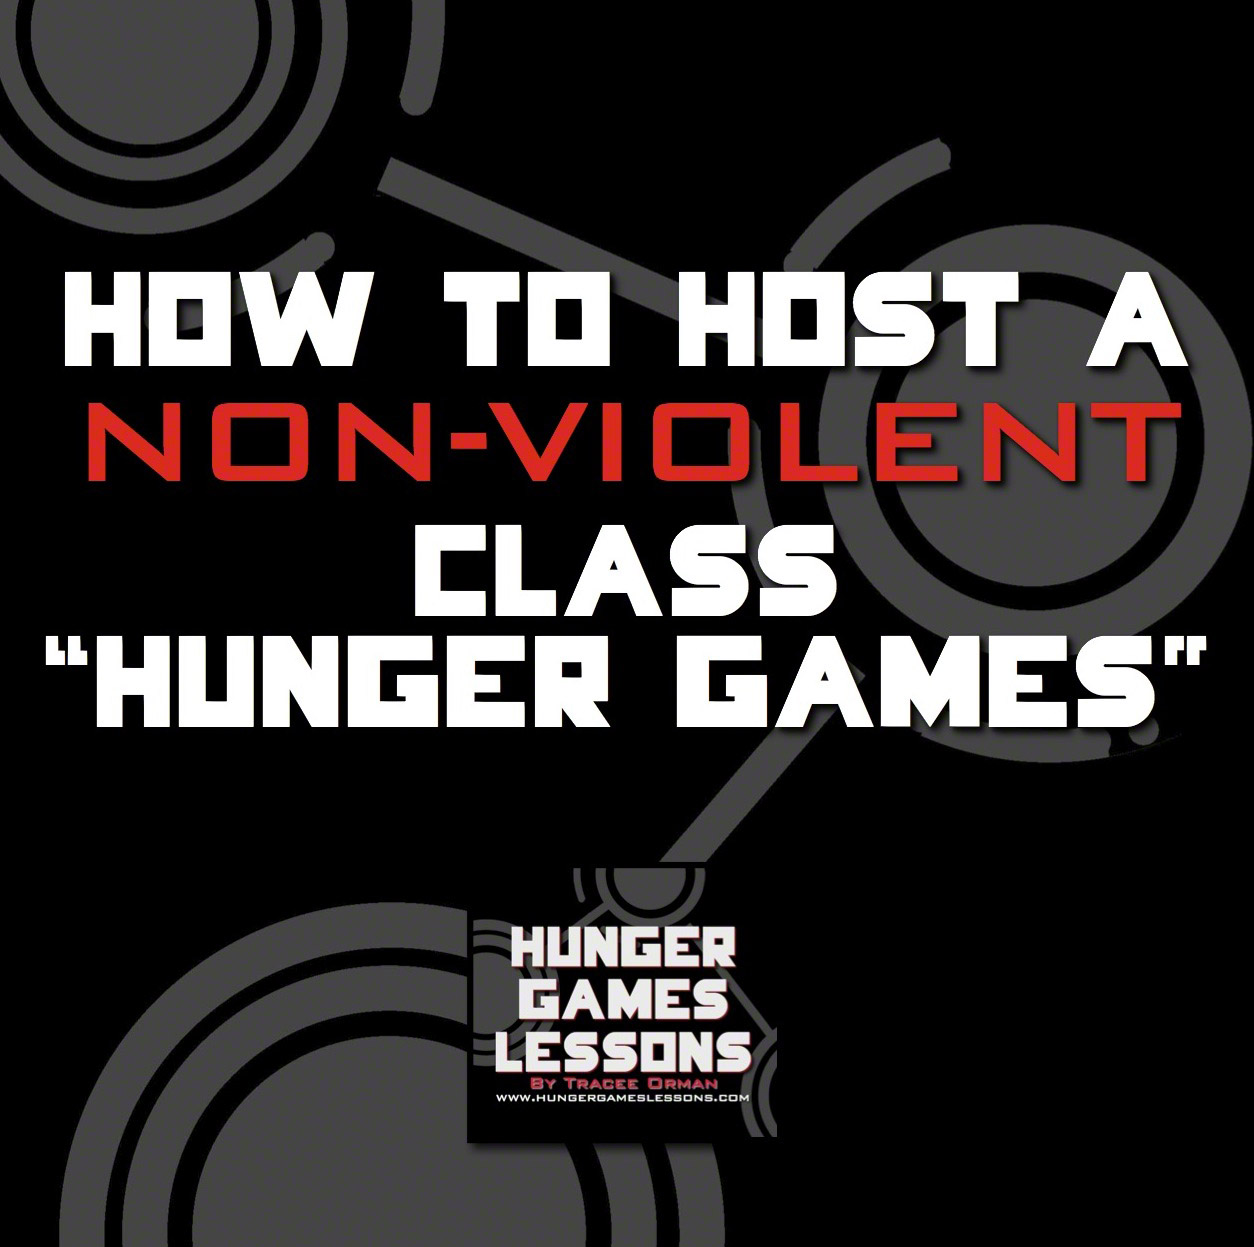 Hunger Games Lessons: How to Host a Non-Violent Class Hunger Games